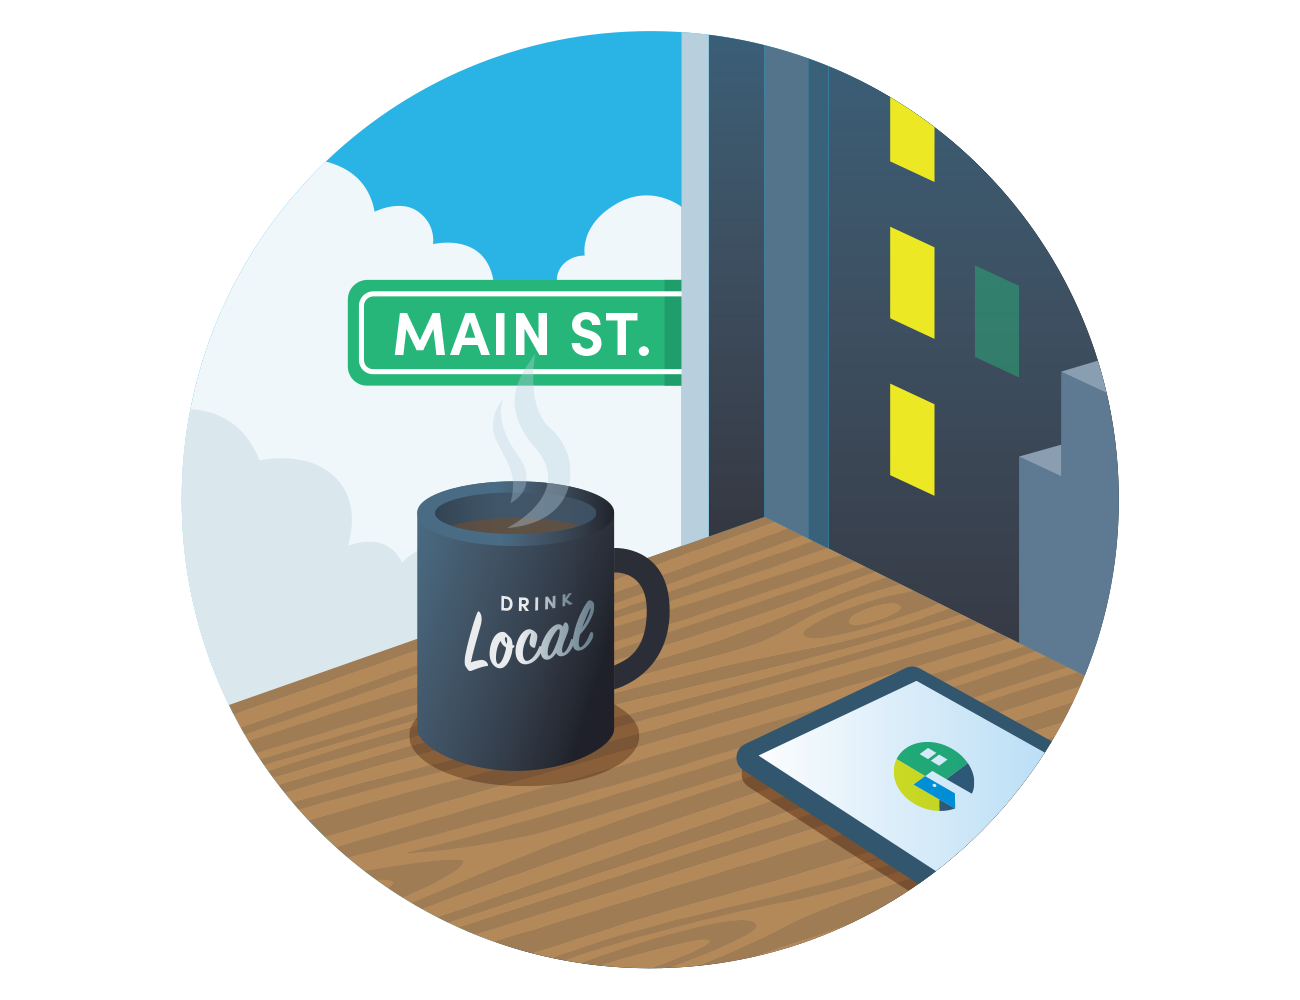 Local Knowledge - Our agents are located where prospective tenants are looking. They have local neighborhood knowledge that creates a warm welcome, not the feeling of an uninformed stranger.